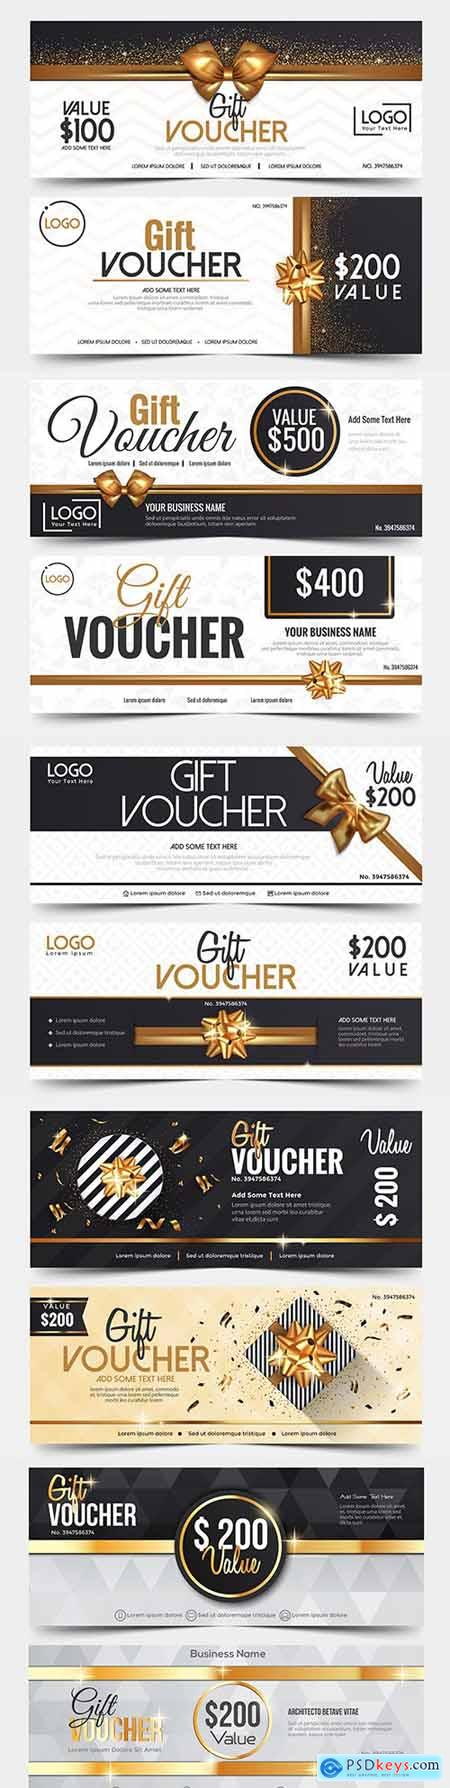 Gift voucher design template for sale illustration 5